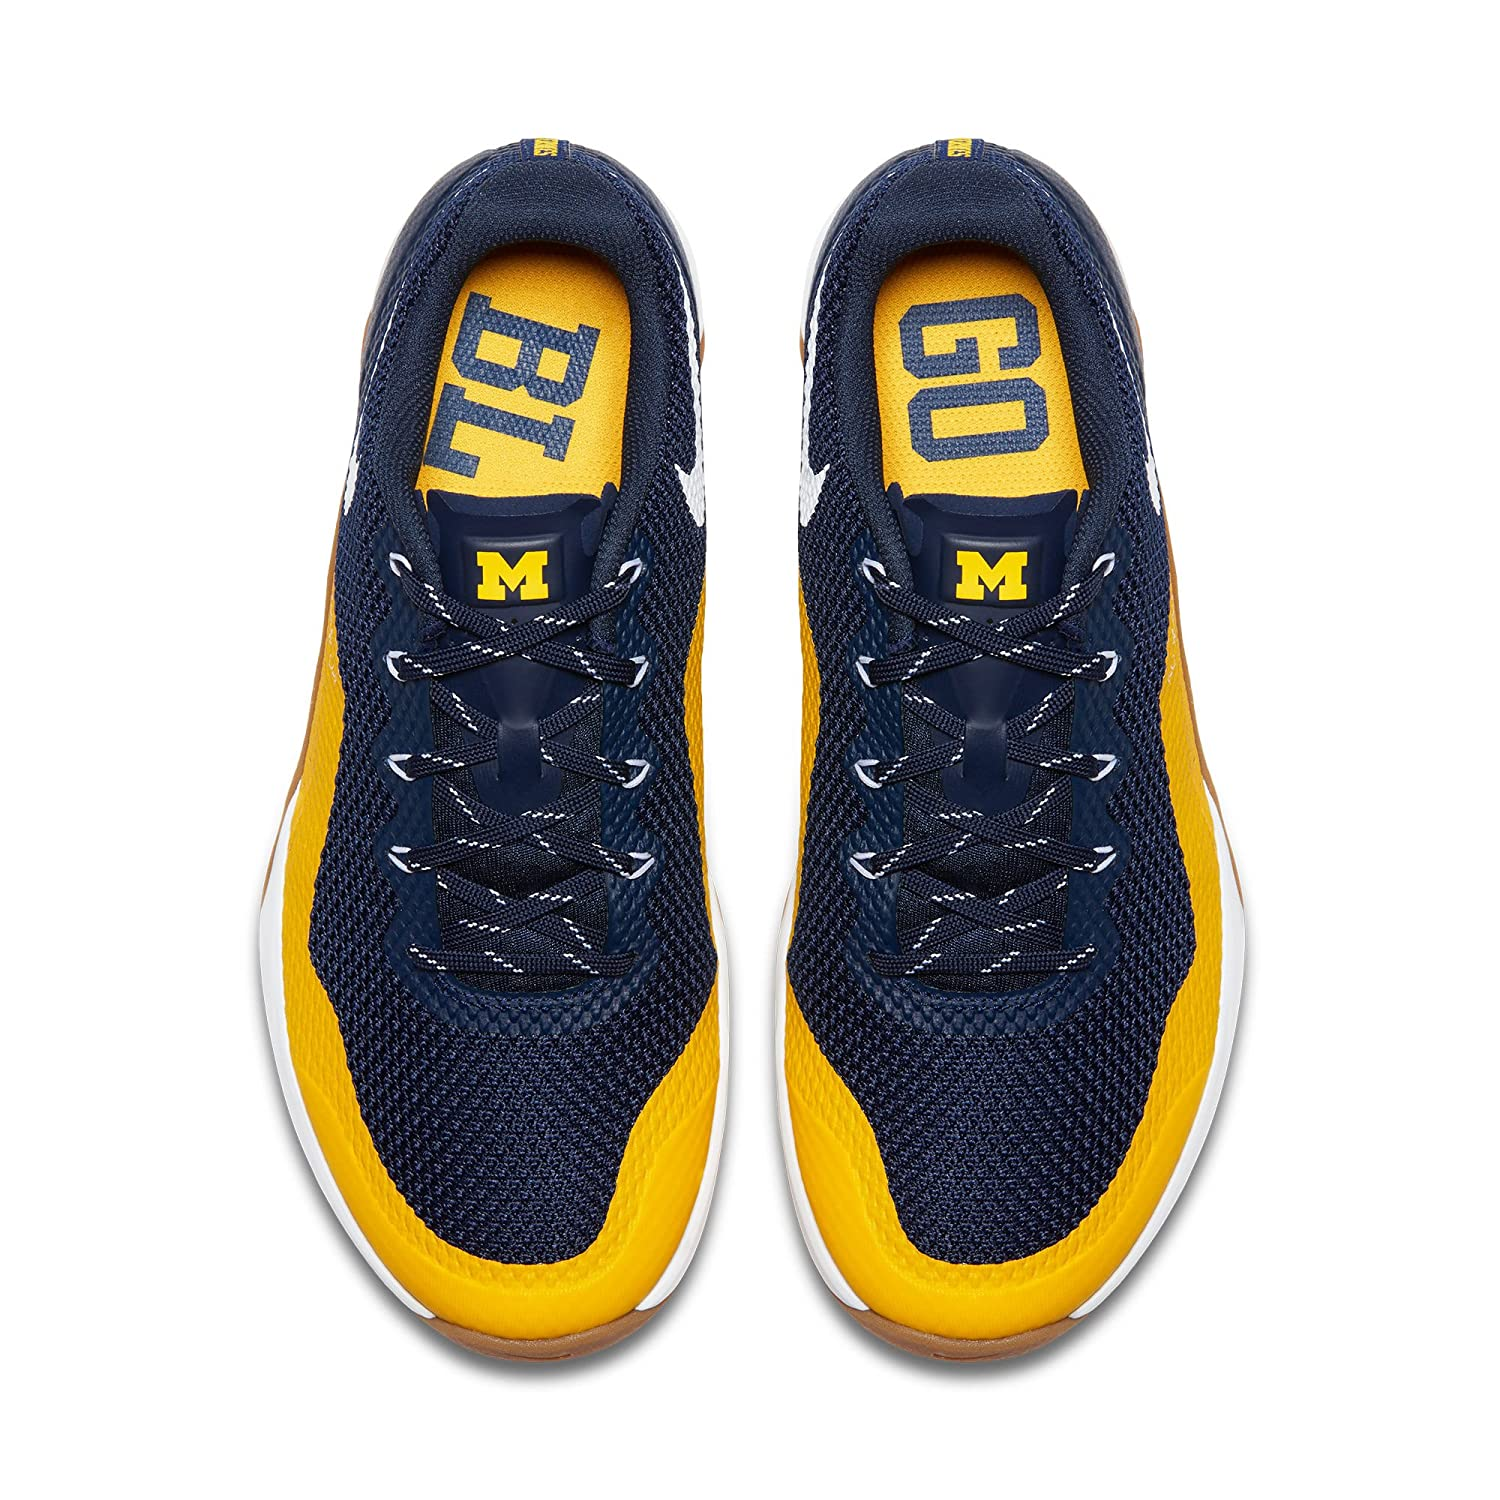 Nike Michigan Wolverines Metcon Repper DSX College Shoes - Size Men's 7 M US:  Amazon.ca: Clothing & Accessories